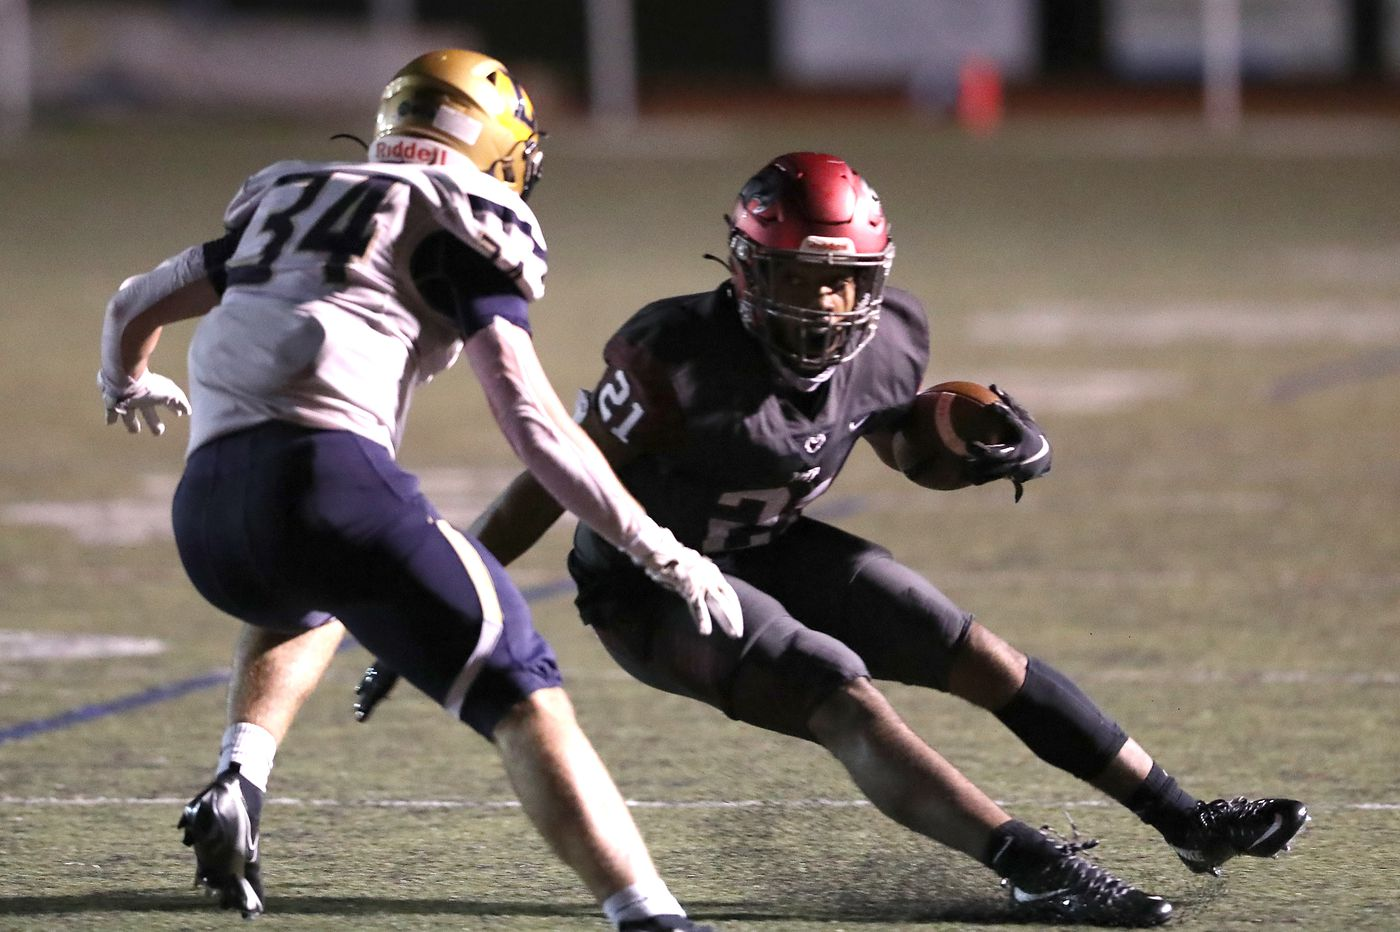 Senior delivers for No. 1 St. Joseph's Prep football after waiting three years to show his skills